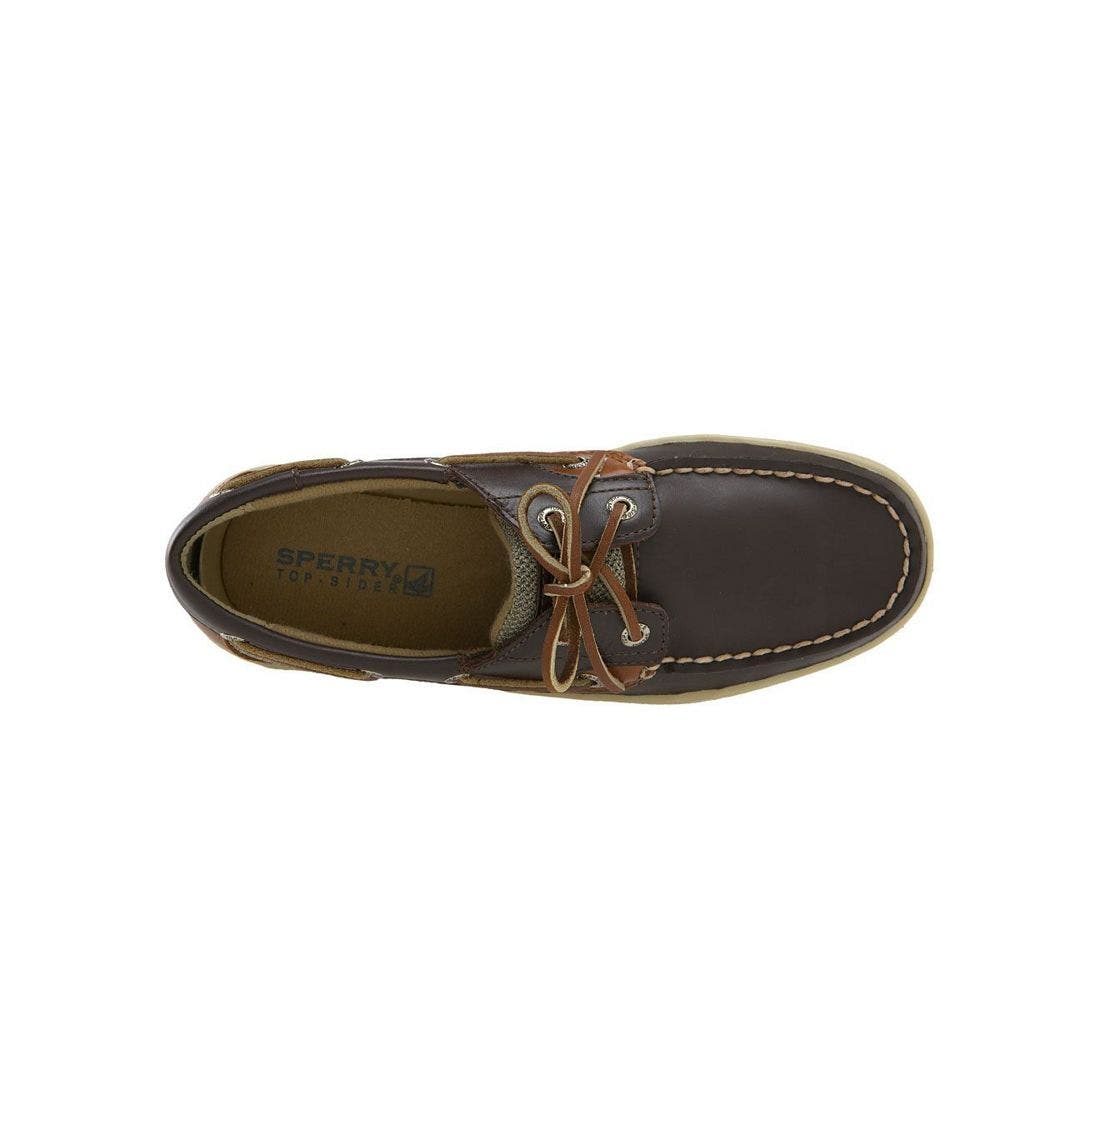 Alternate Image 2  - Sperry Kids 'Bluefish' Boat Shoe (Walker, Toddler, Little Kid & Big Kid)